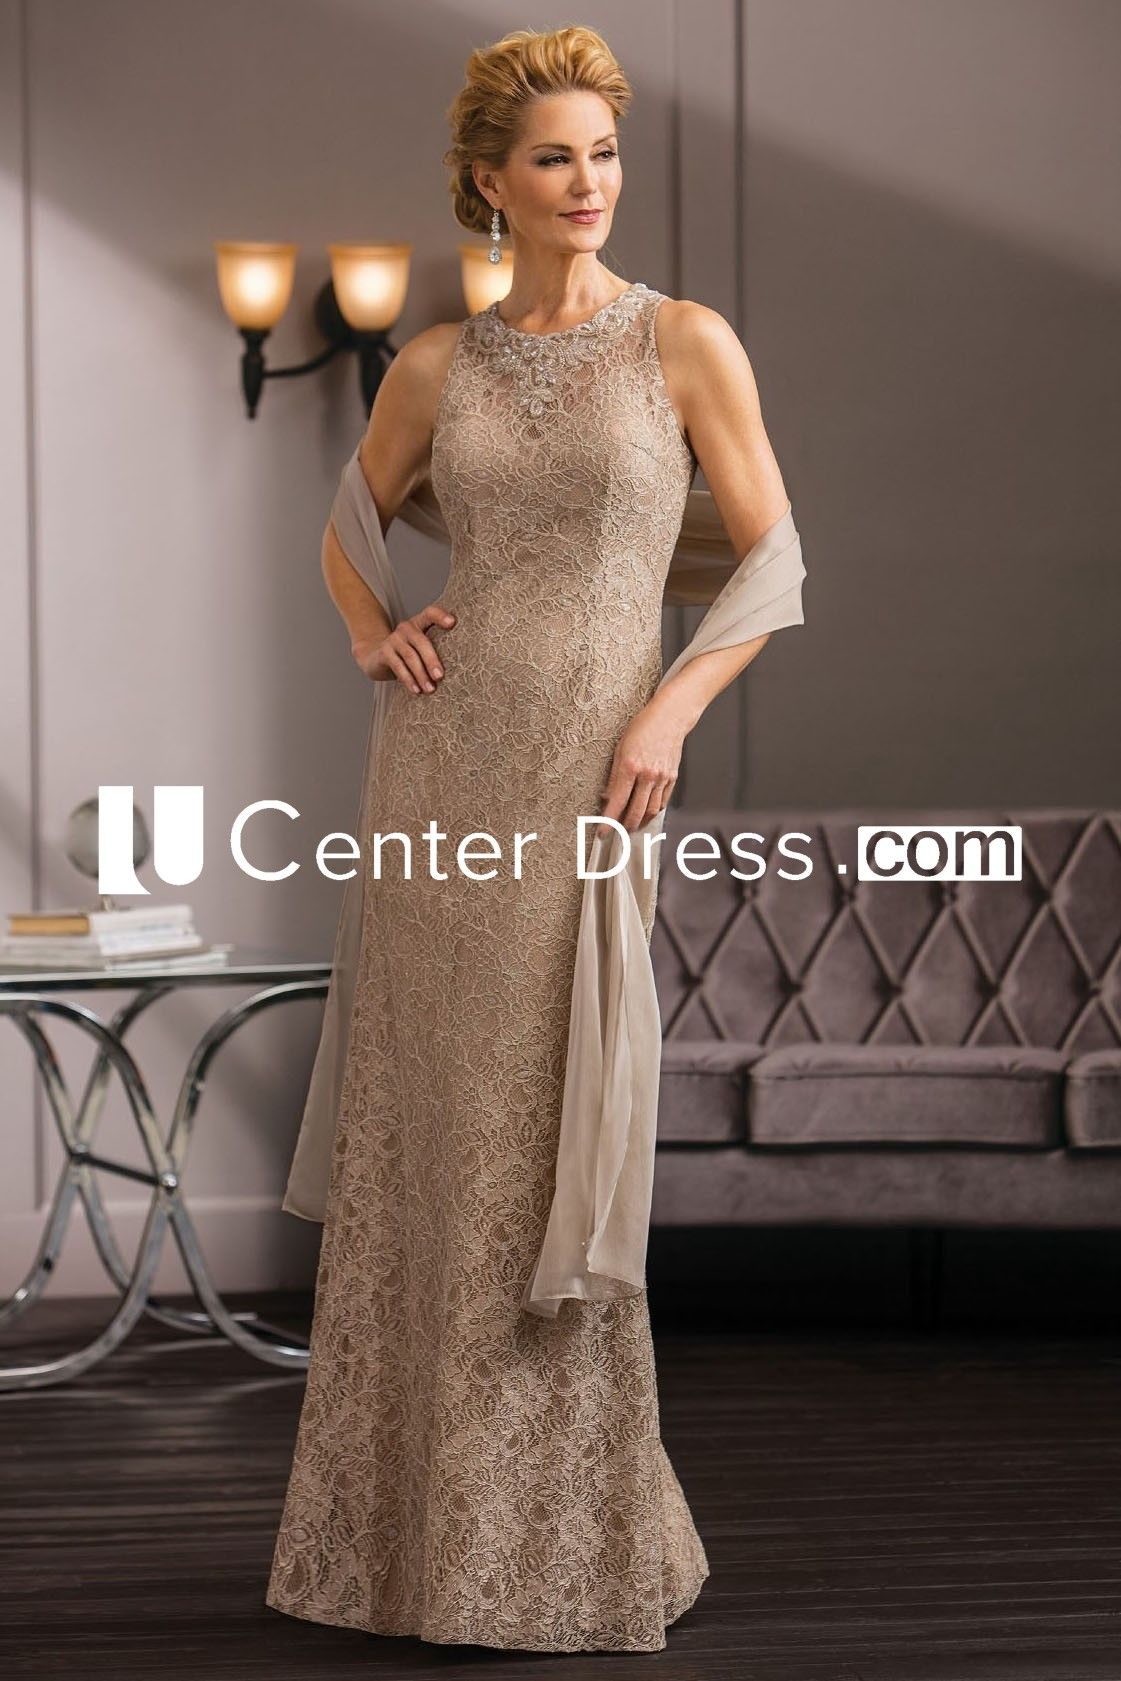 121 29 Vintage High Neck Sleeveless Long Lace Mother Of The Groom Dress With Shawl